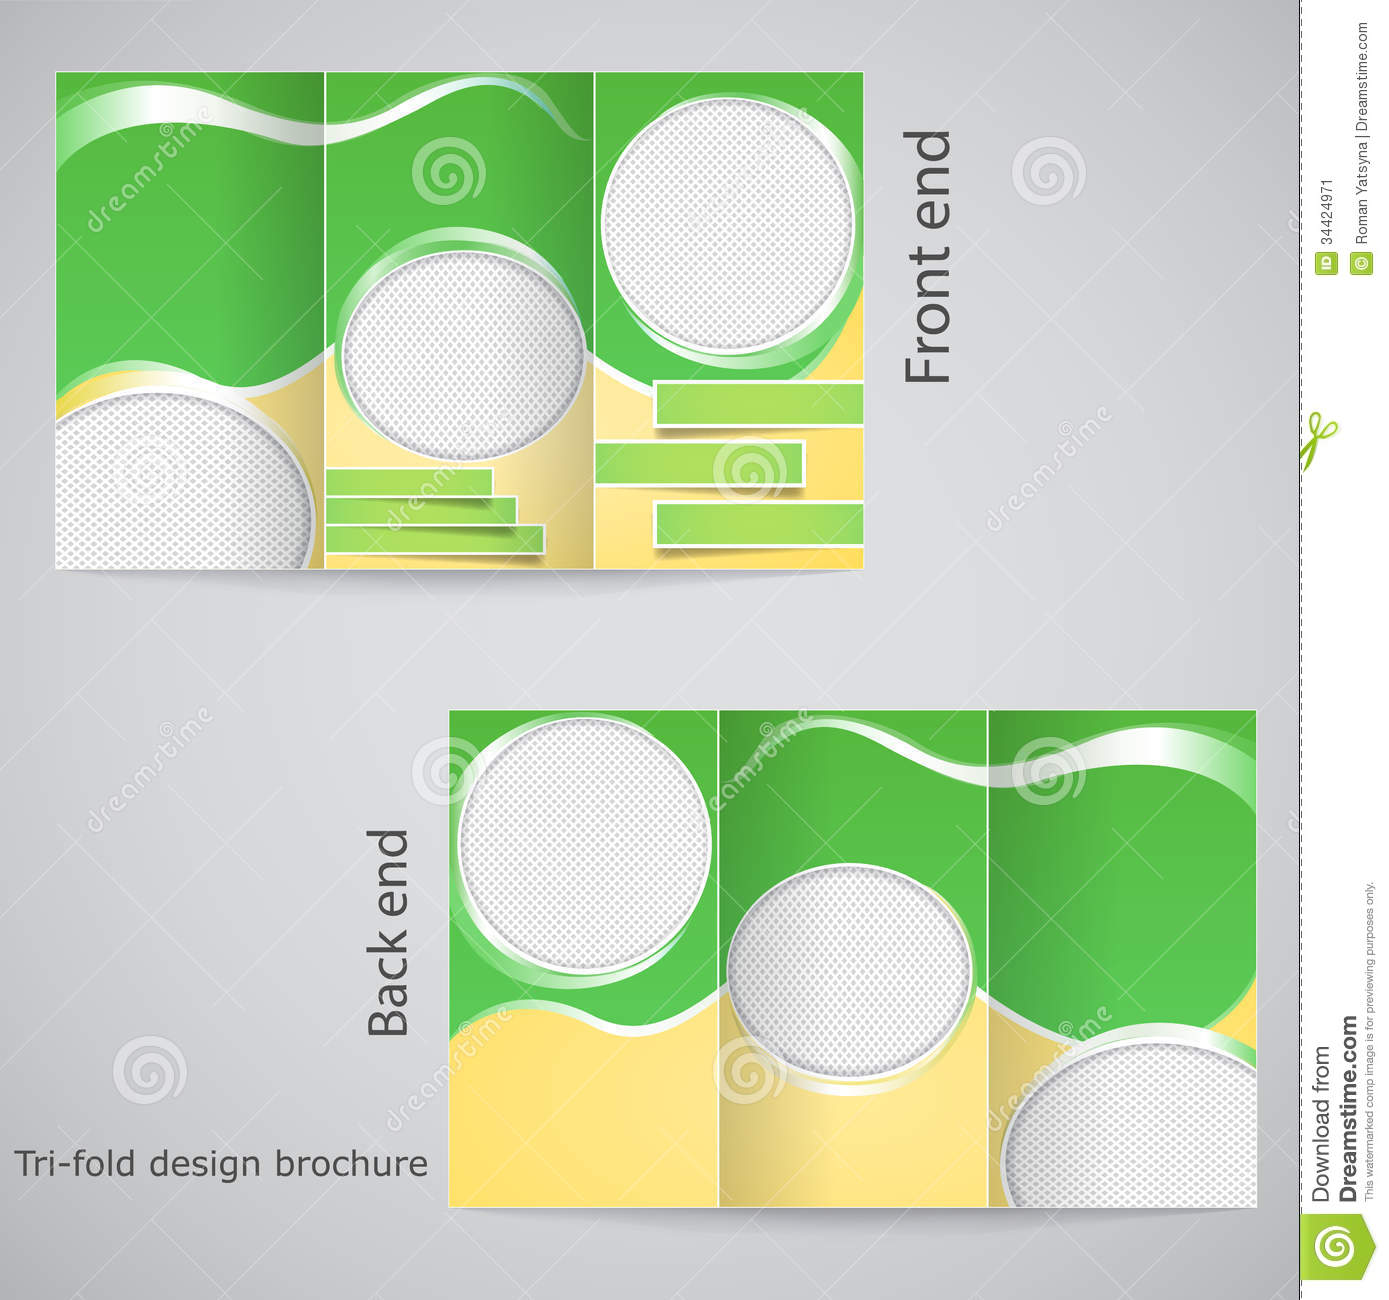 brochure template design - tri fold brochure design stock vector illustration of